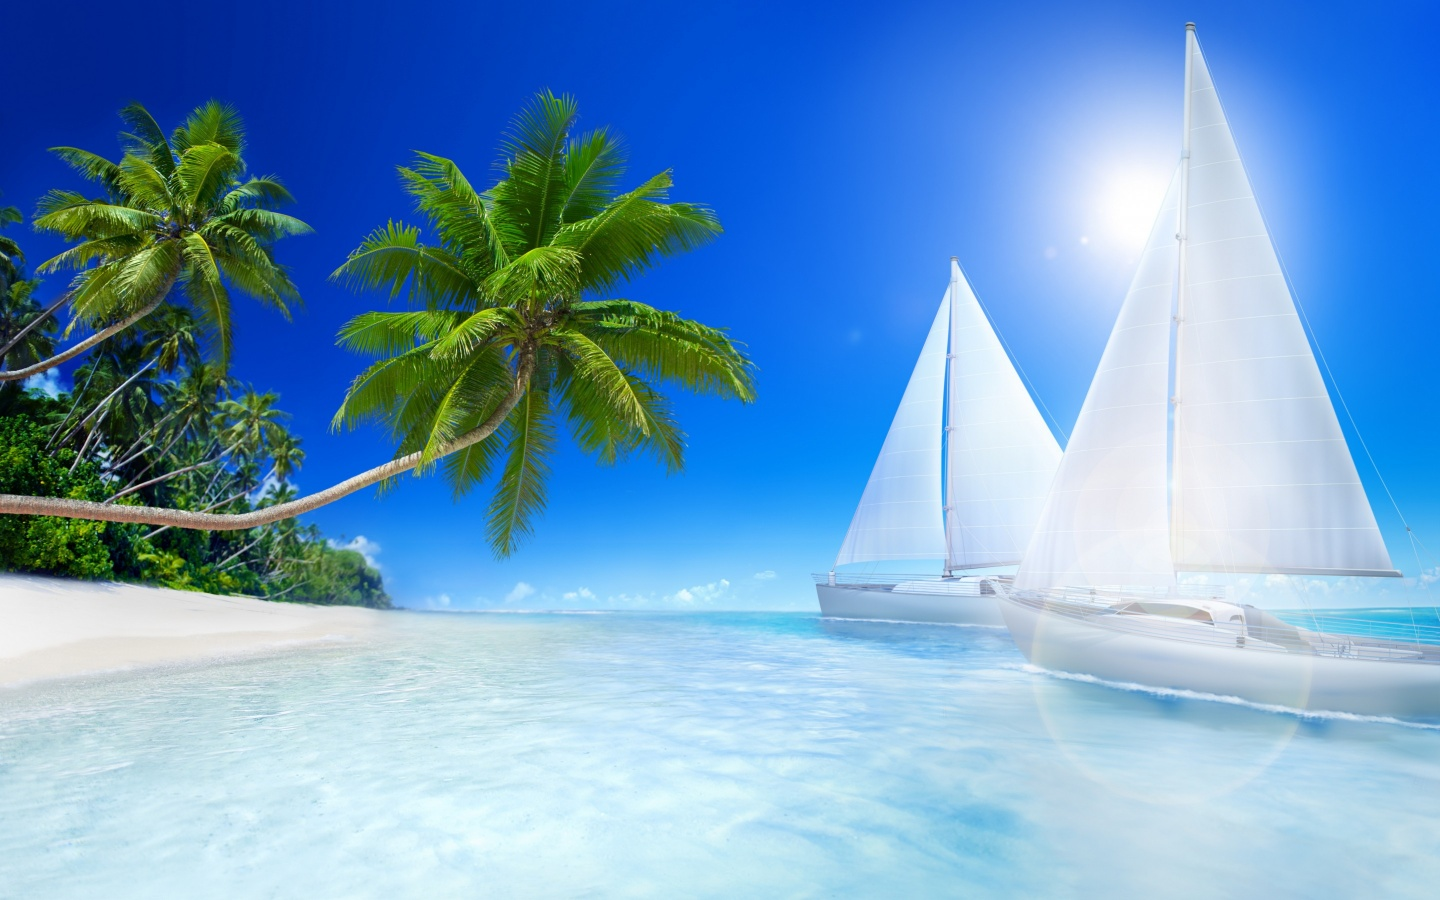 Tropical Beache Wallpapers HD Wallpapers 1440x900